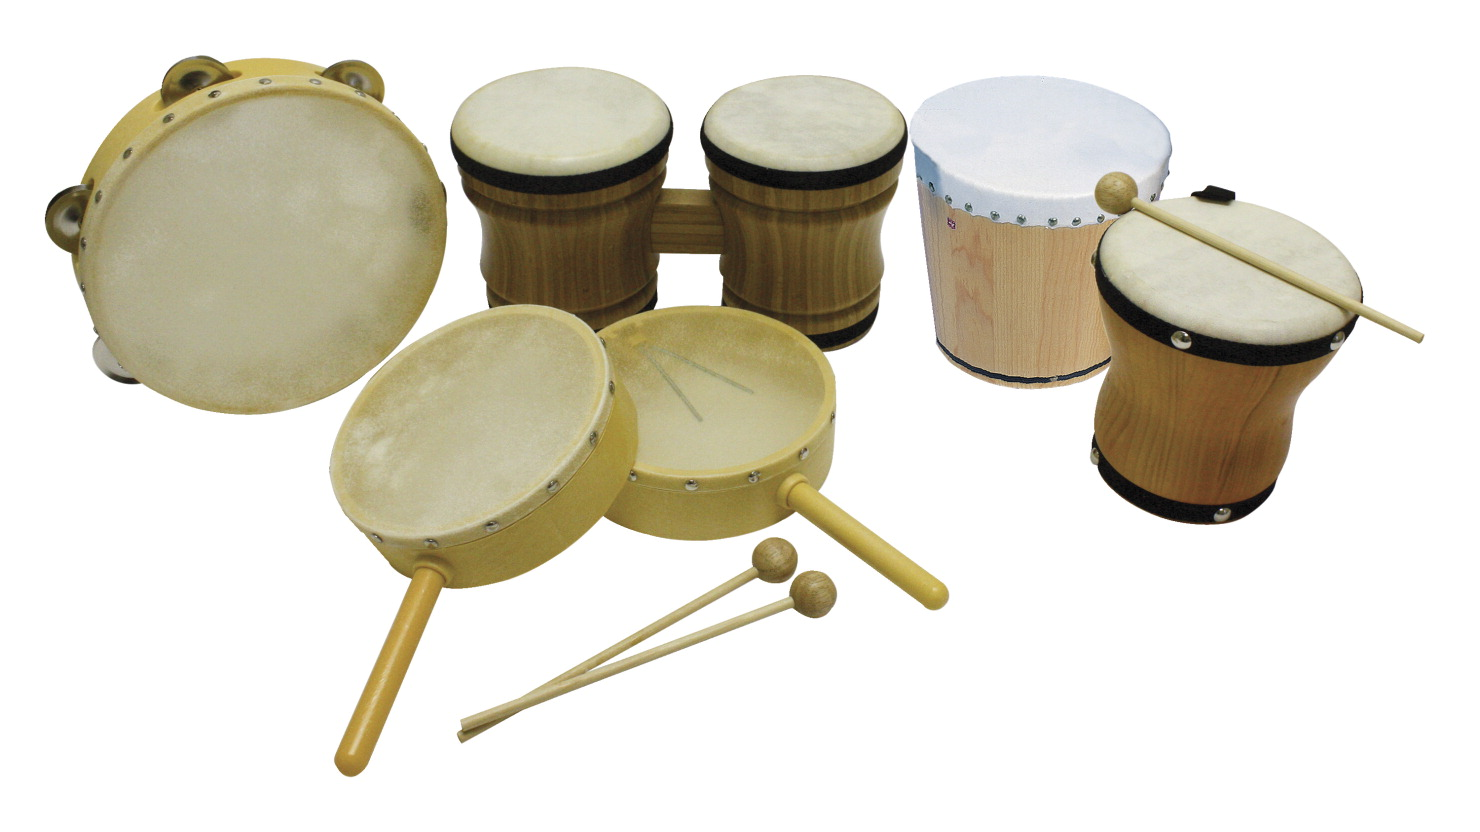 Rhythm Band Drums Instrument Kit